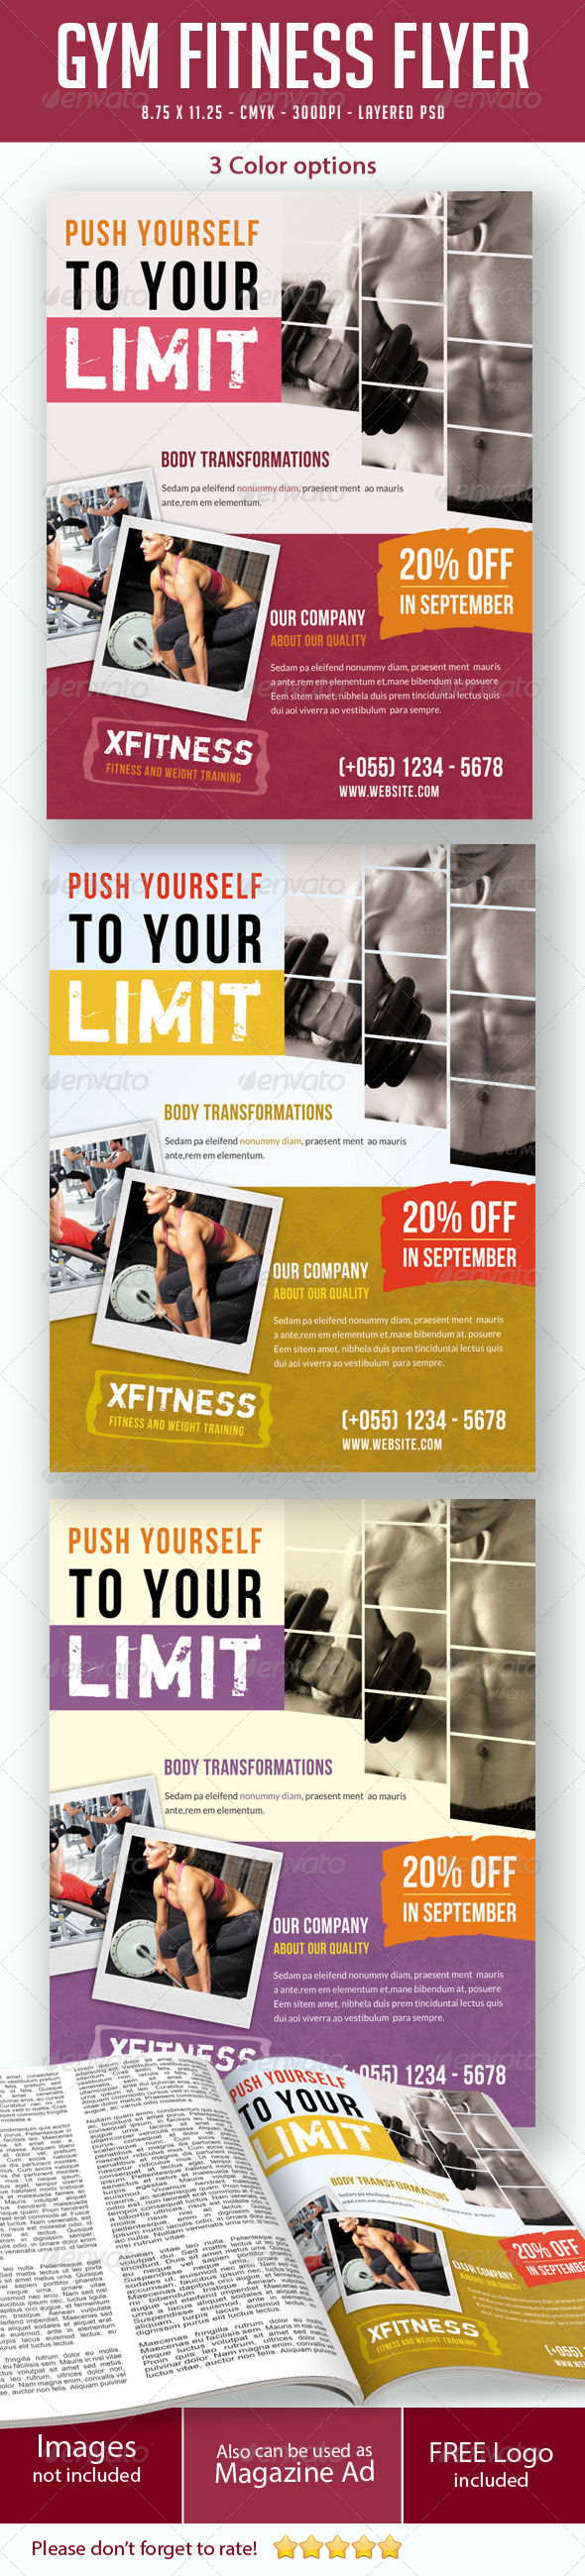 GraphicRiver Gym Fitness Flyer Print Ad 5343142